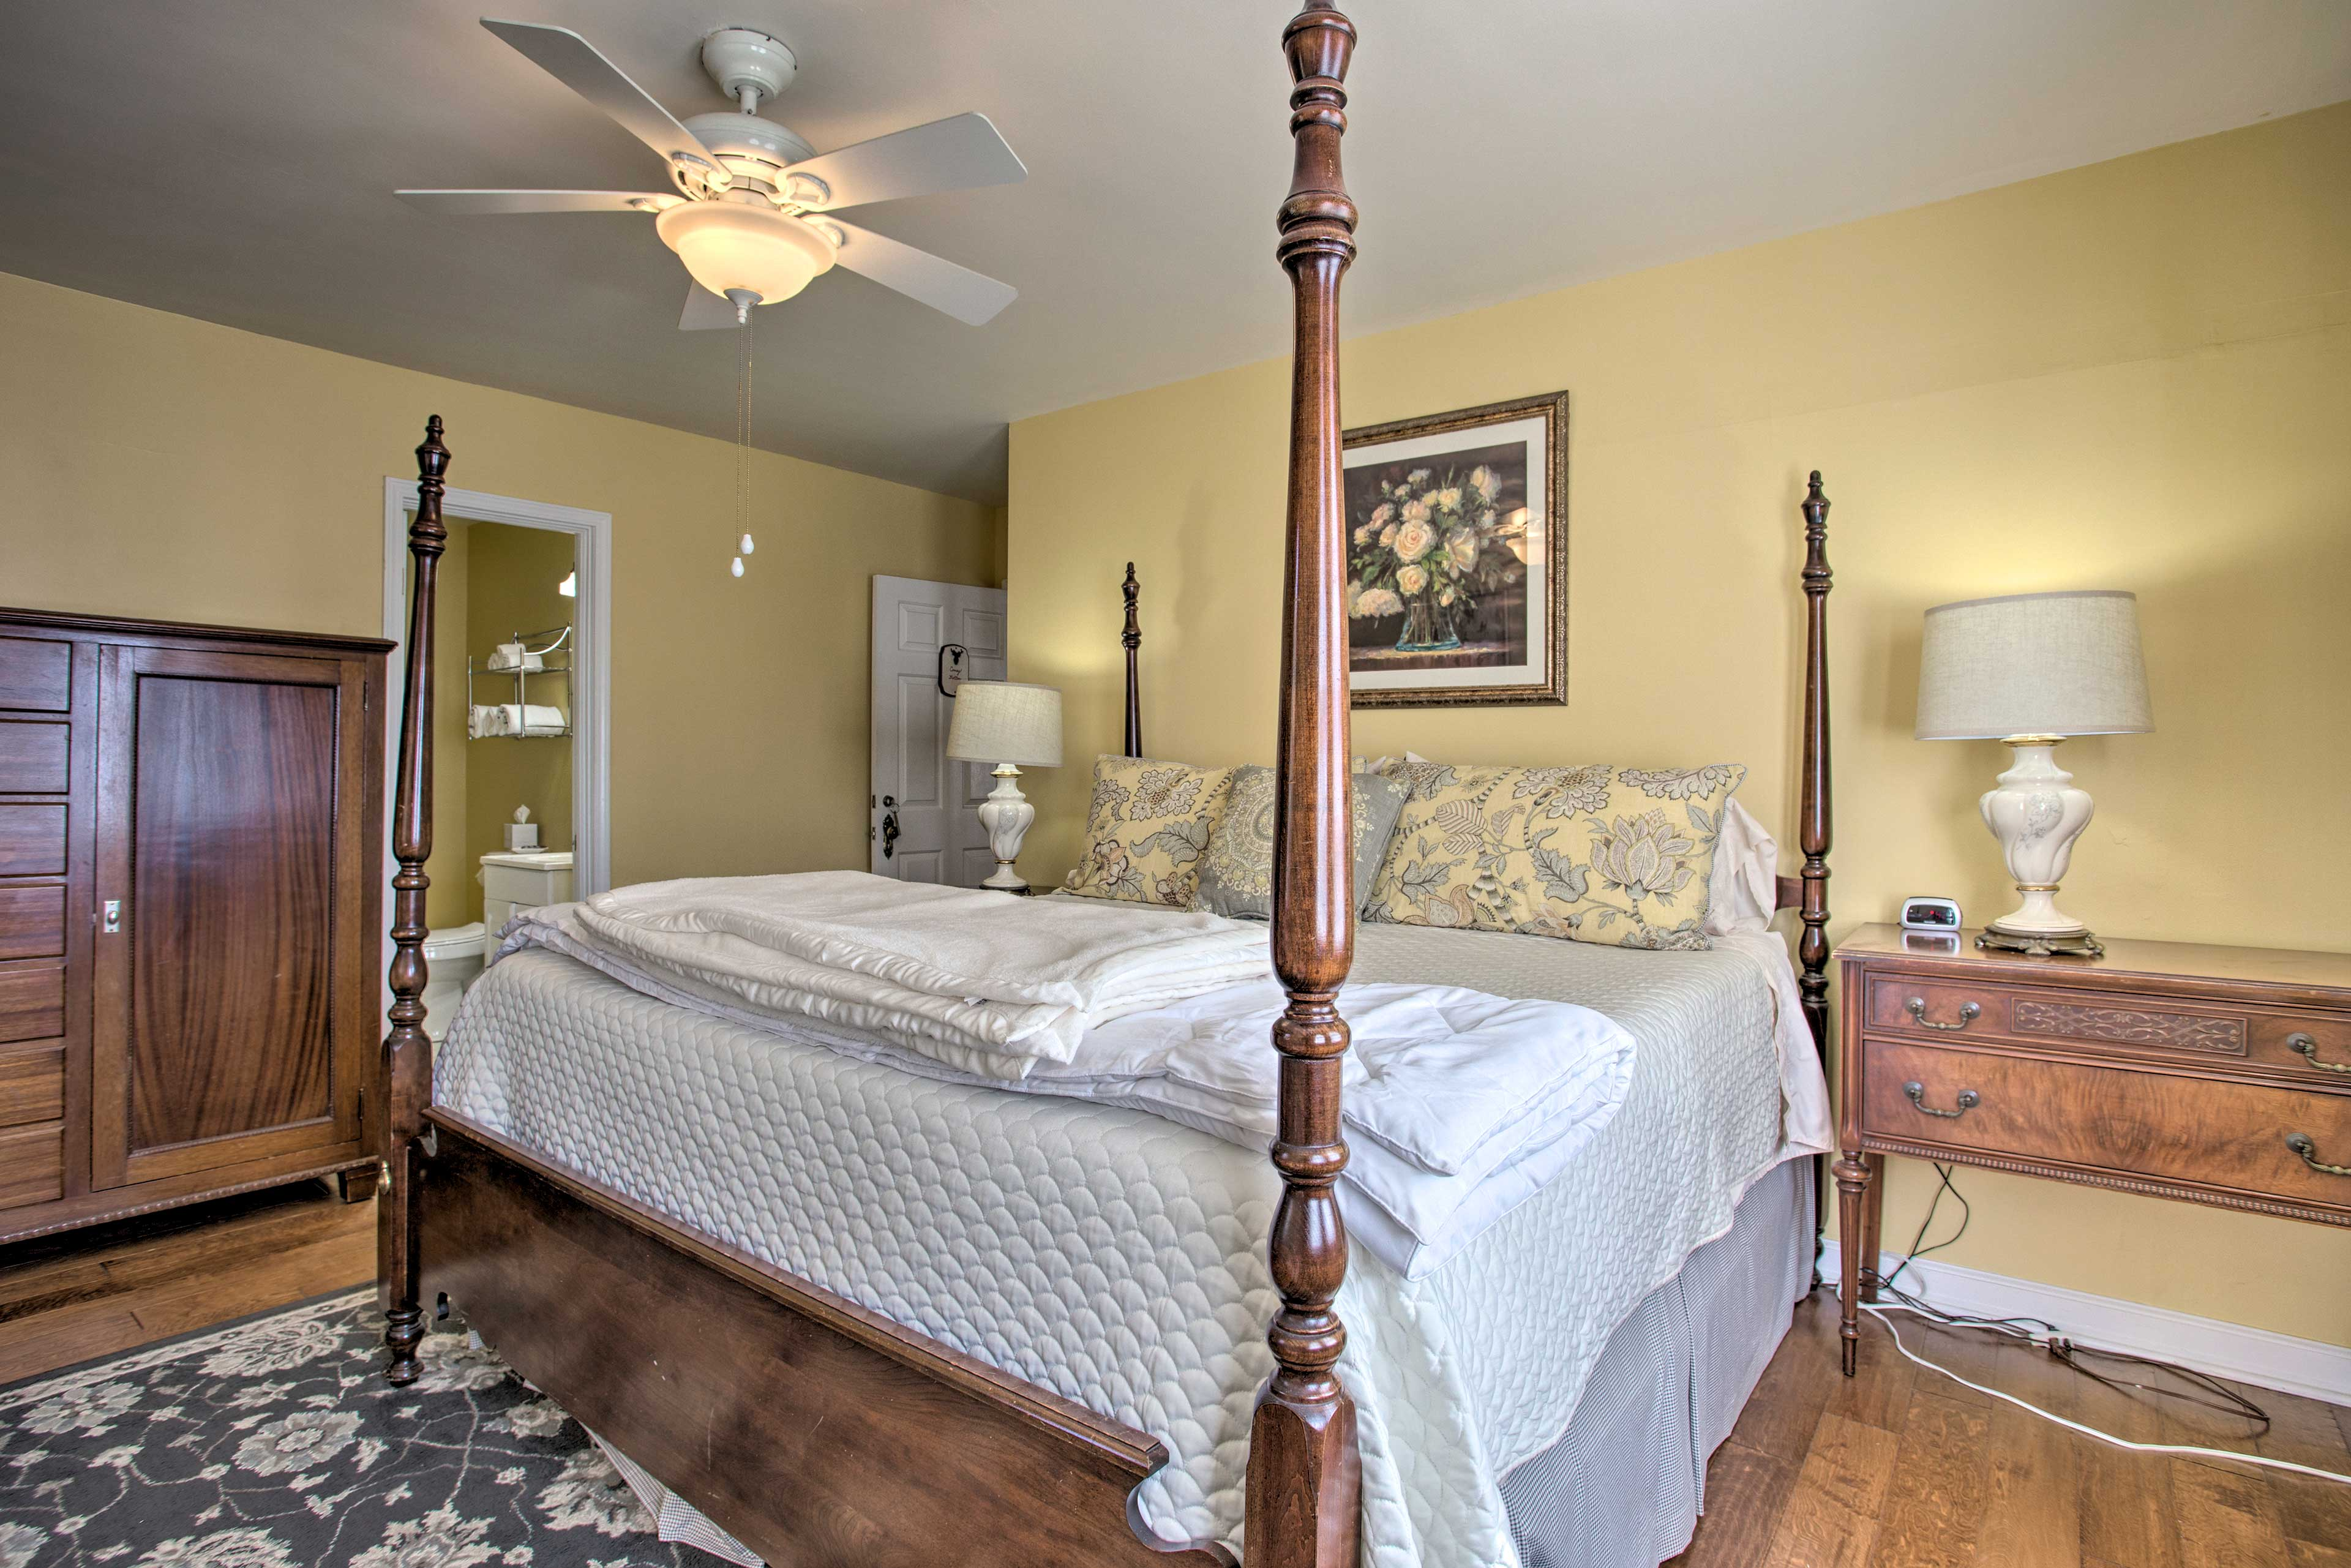 Linens will be provided for your stay.